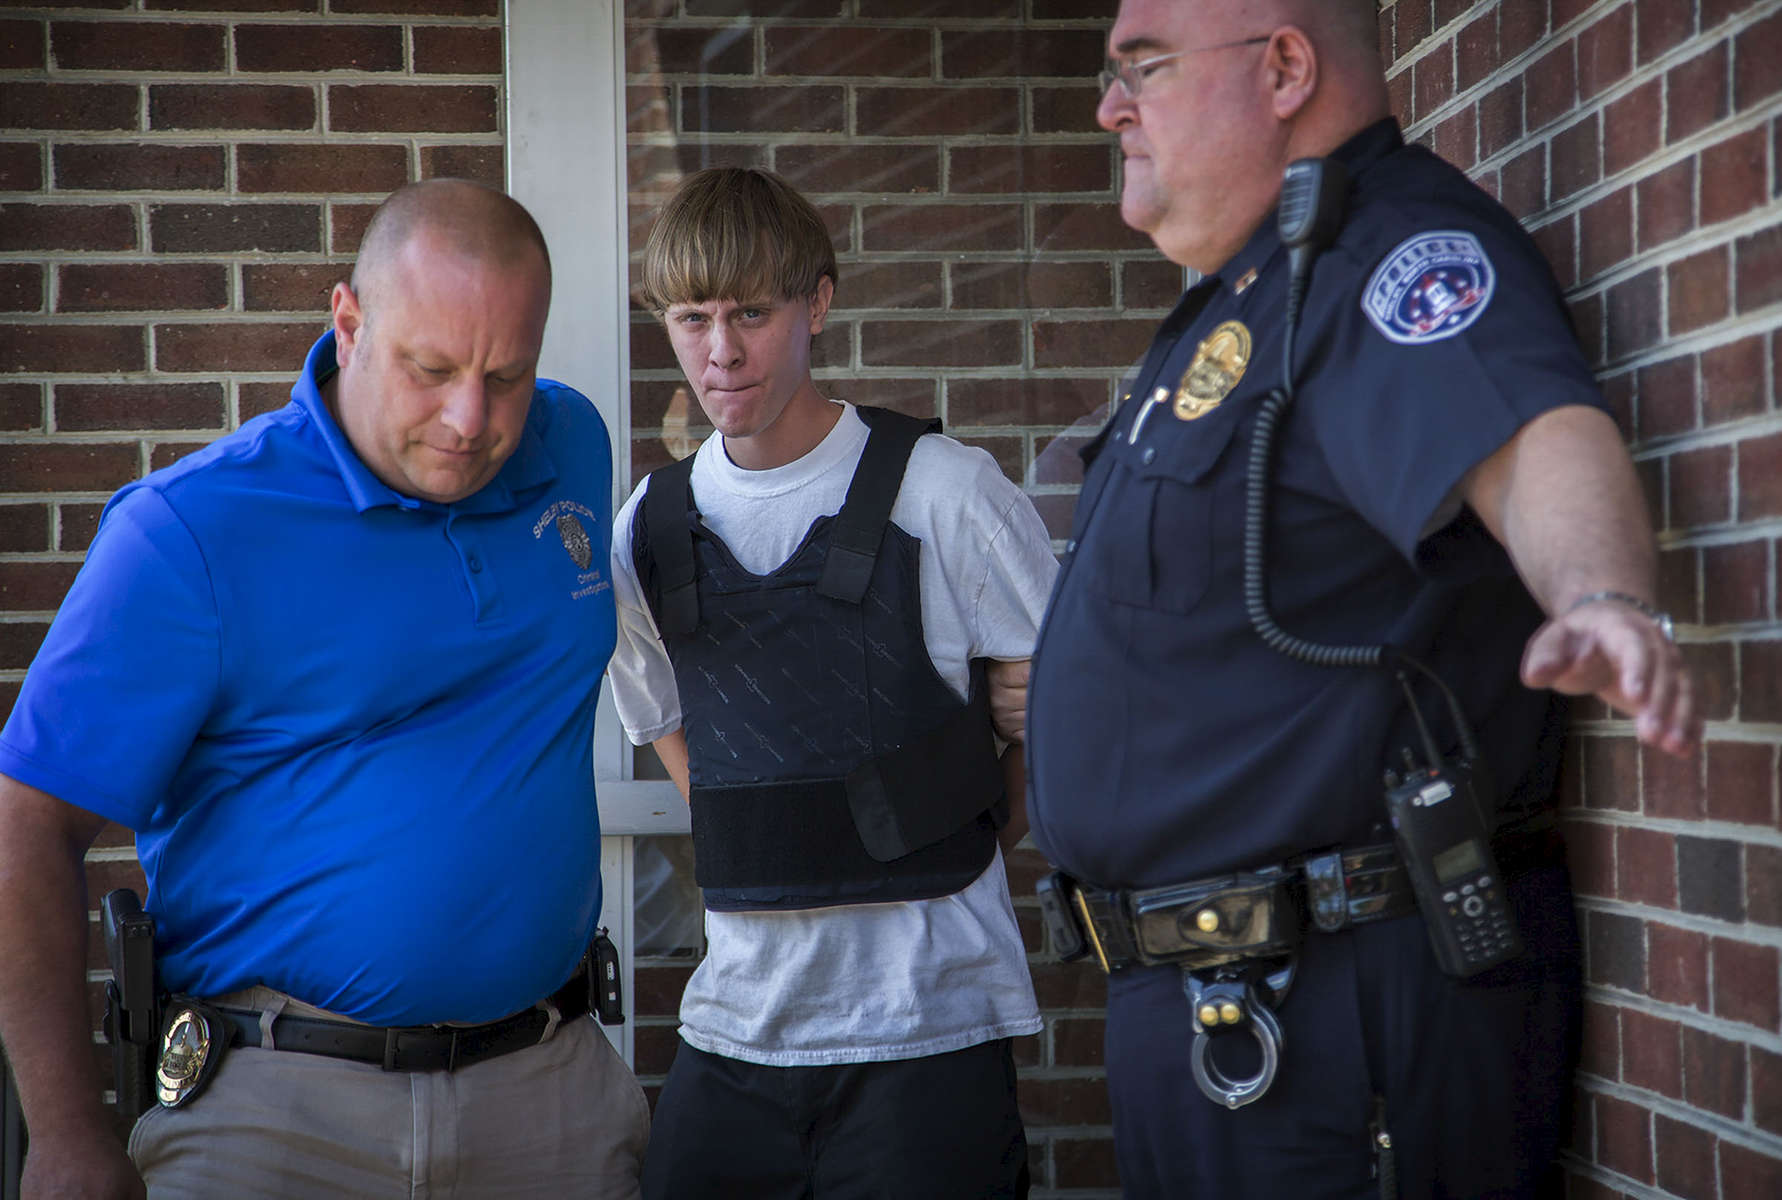 First Place | General News Dillon Deaton, UNC Chapel HillCharleston shooting suspect Dylann Roof is escorted from the Shelby Police Department in Shelby, N.C. on Thursday, June 18, 2015. After a massive manhunt, police apprehended Roof during a traffic strop in Shelby, N.C. after receiving a tip from a motorist. Roof entered Emanuel African Methodist Episcopal Church in Charleston, SC on June 17, 2015 and quietly sat through around an hour of bible study before pulling out a pistol and killing nine people. Joey Meek, a friend of Roof, told The associated Press that Roof had drunkenly complained that {quote}blacks were taking over the world{quote} and {quote}someone needed to do something about it for the white race.{quote} Roof faces state and federal charges including nine murder counts, hate crimes, and obstruction of the practice of religion.